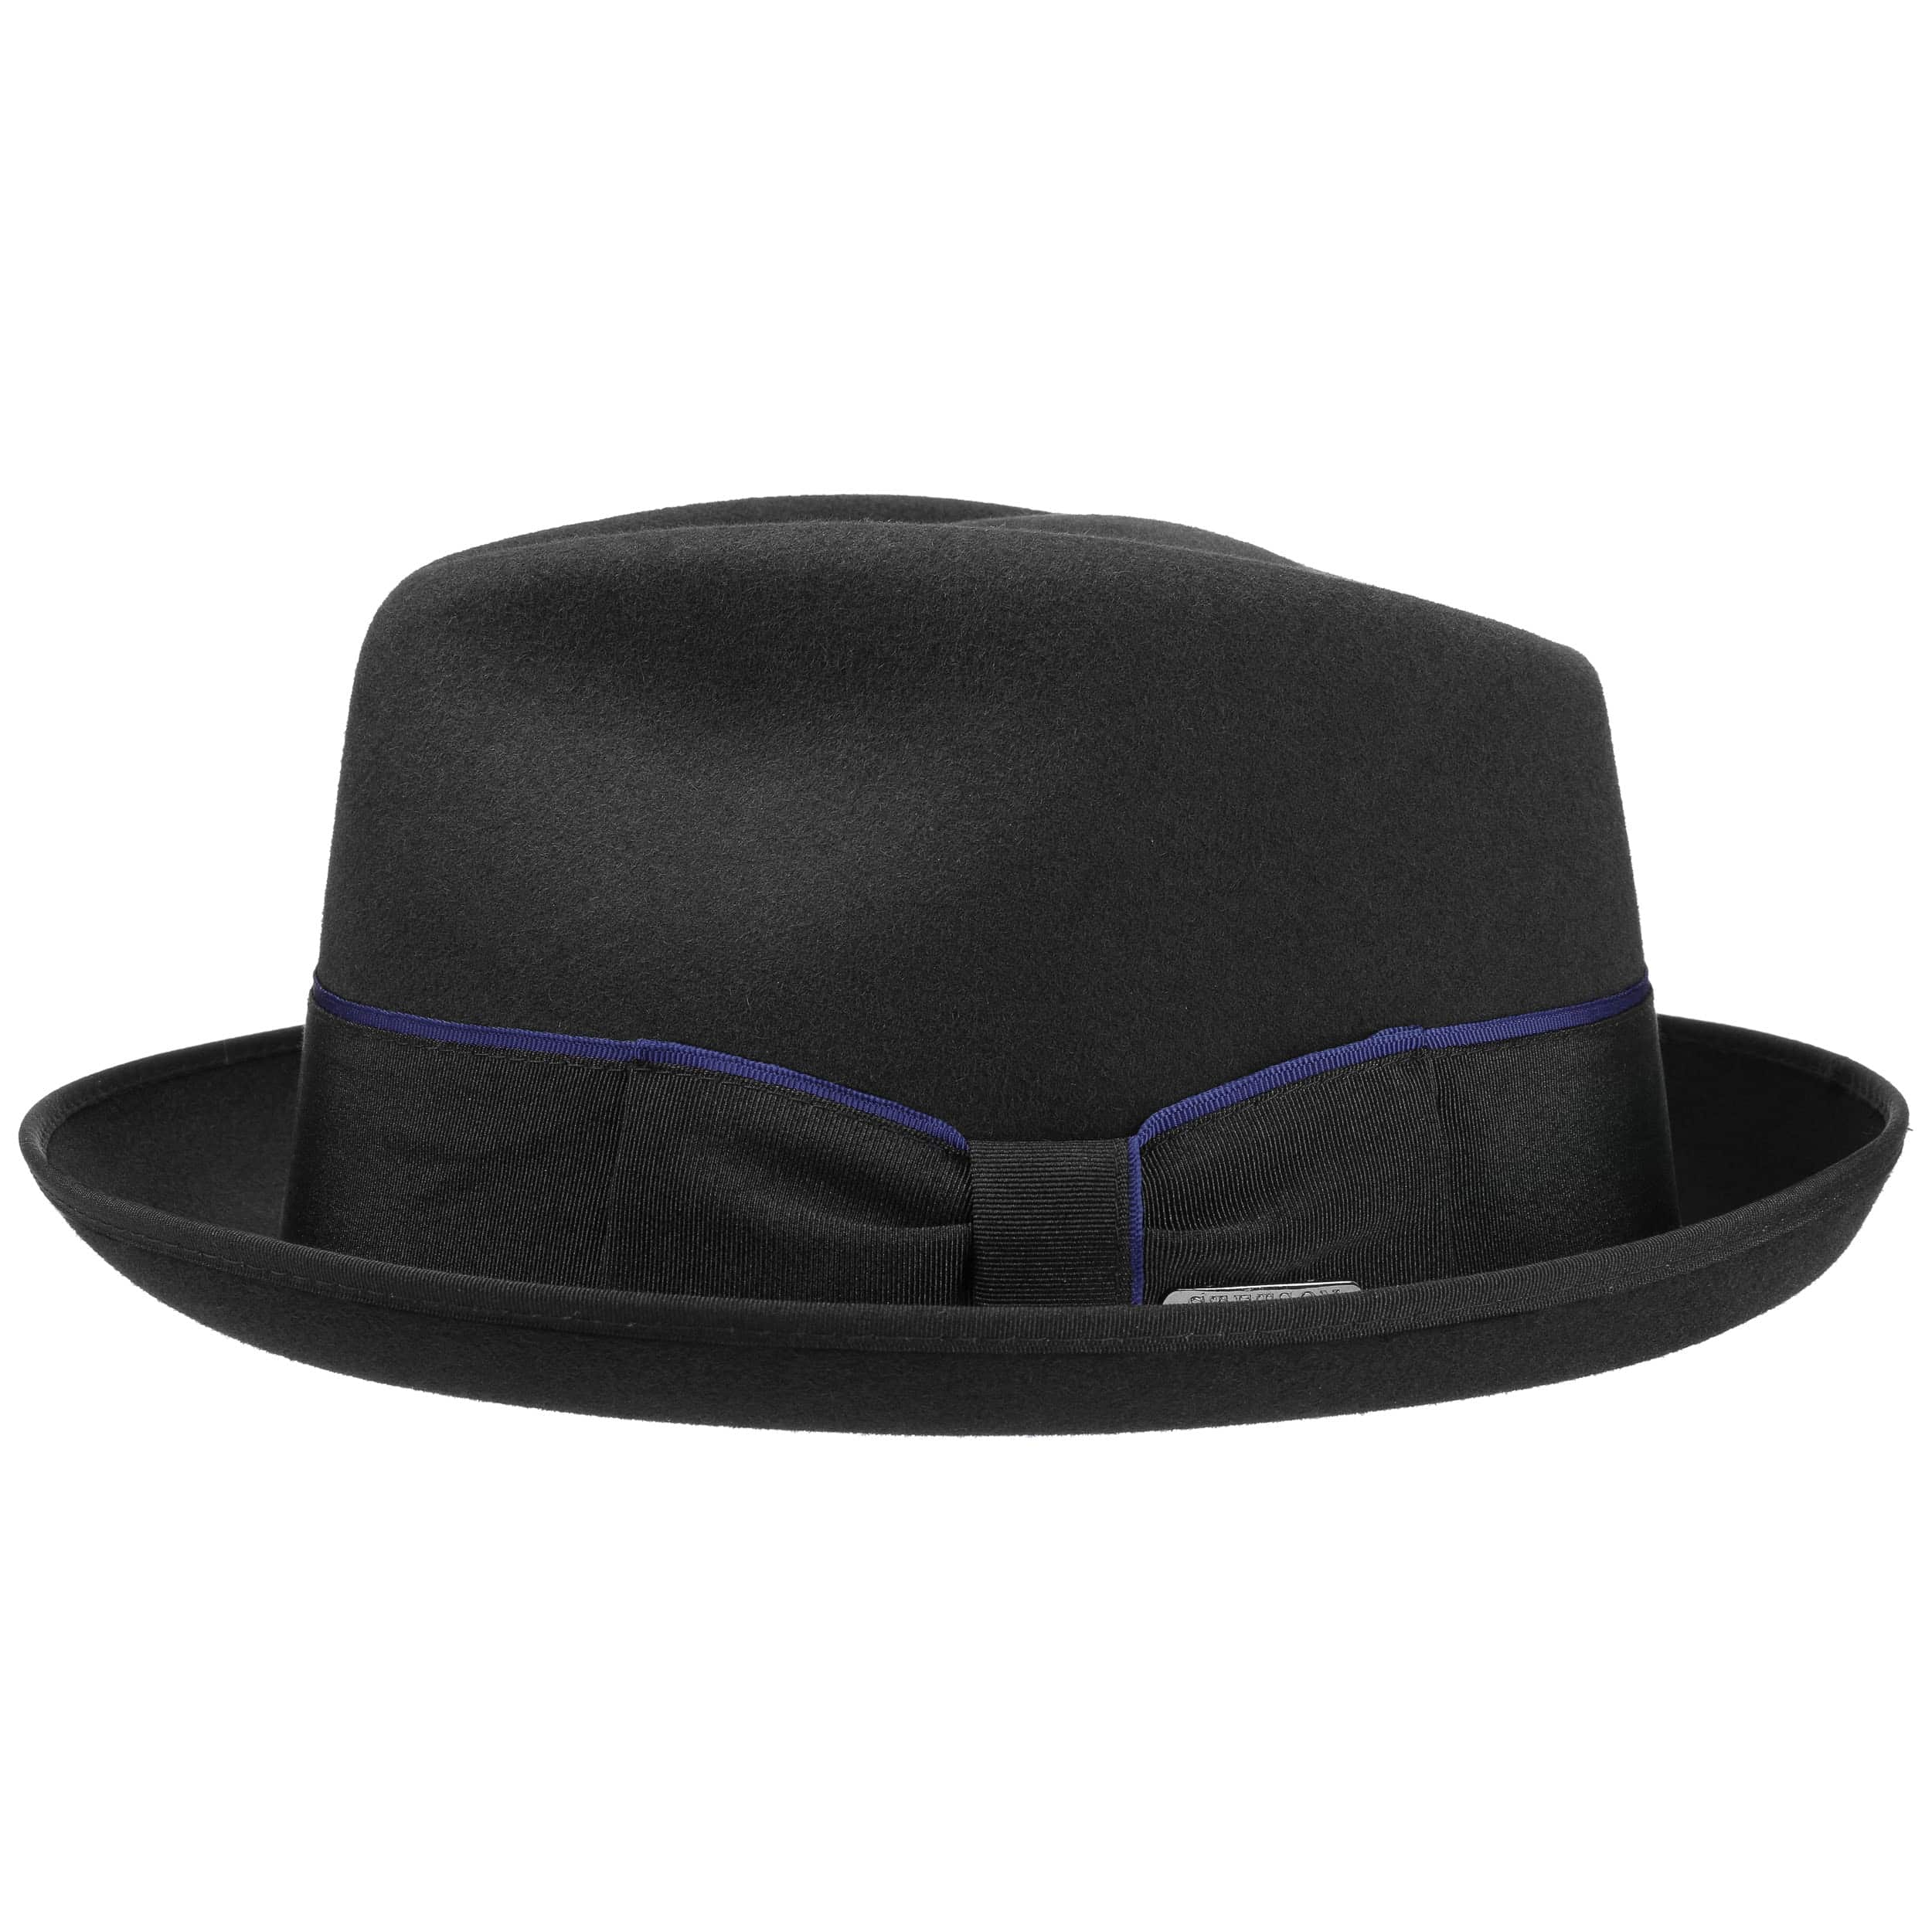 5be01a47c5f ... Vertasco Diamond Fur Felt Hat by Stetson - black 1